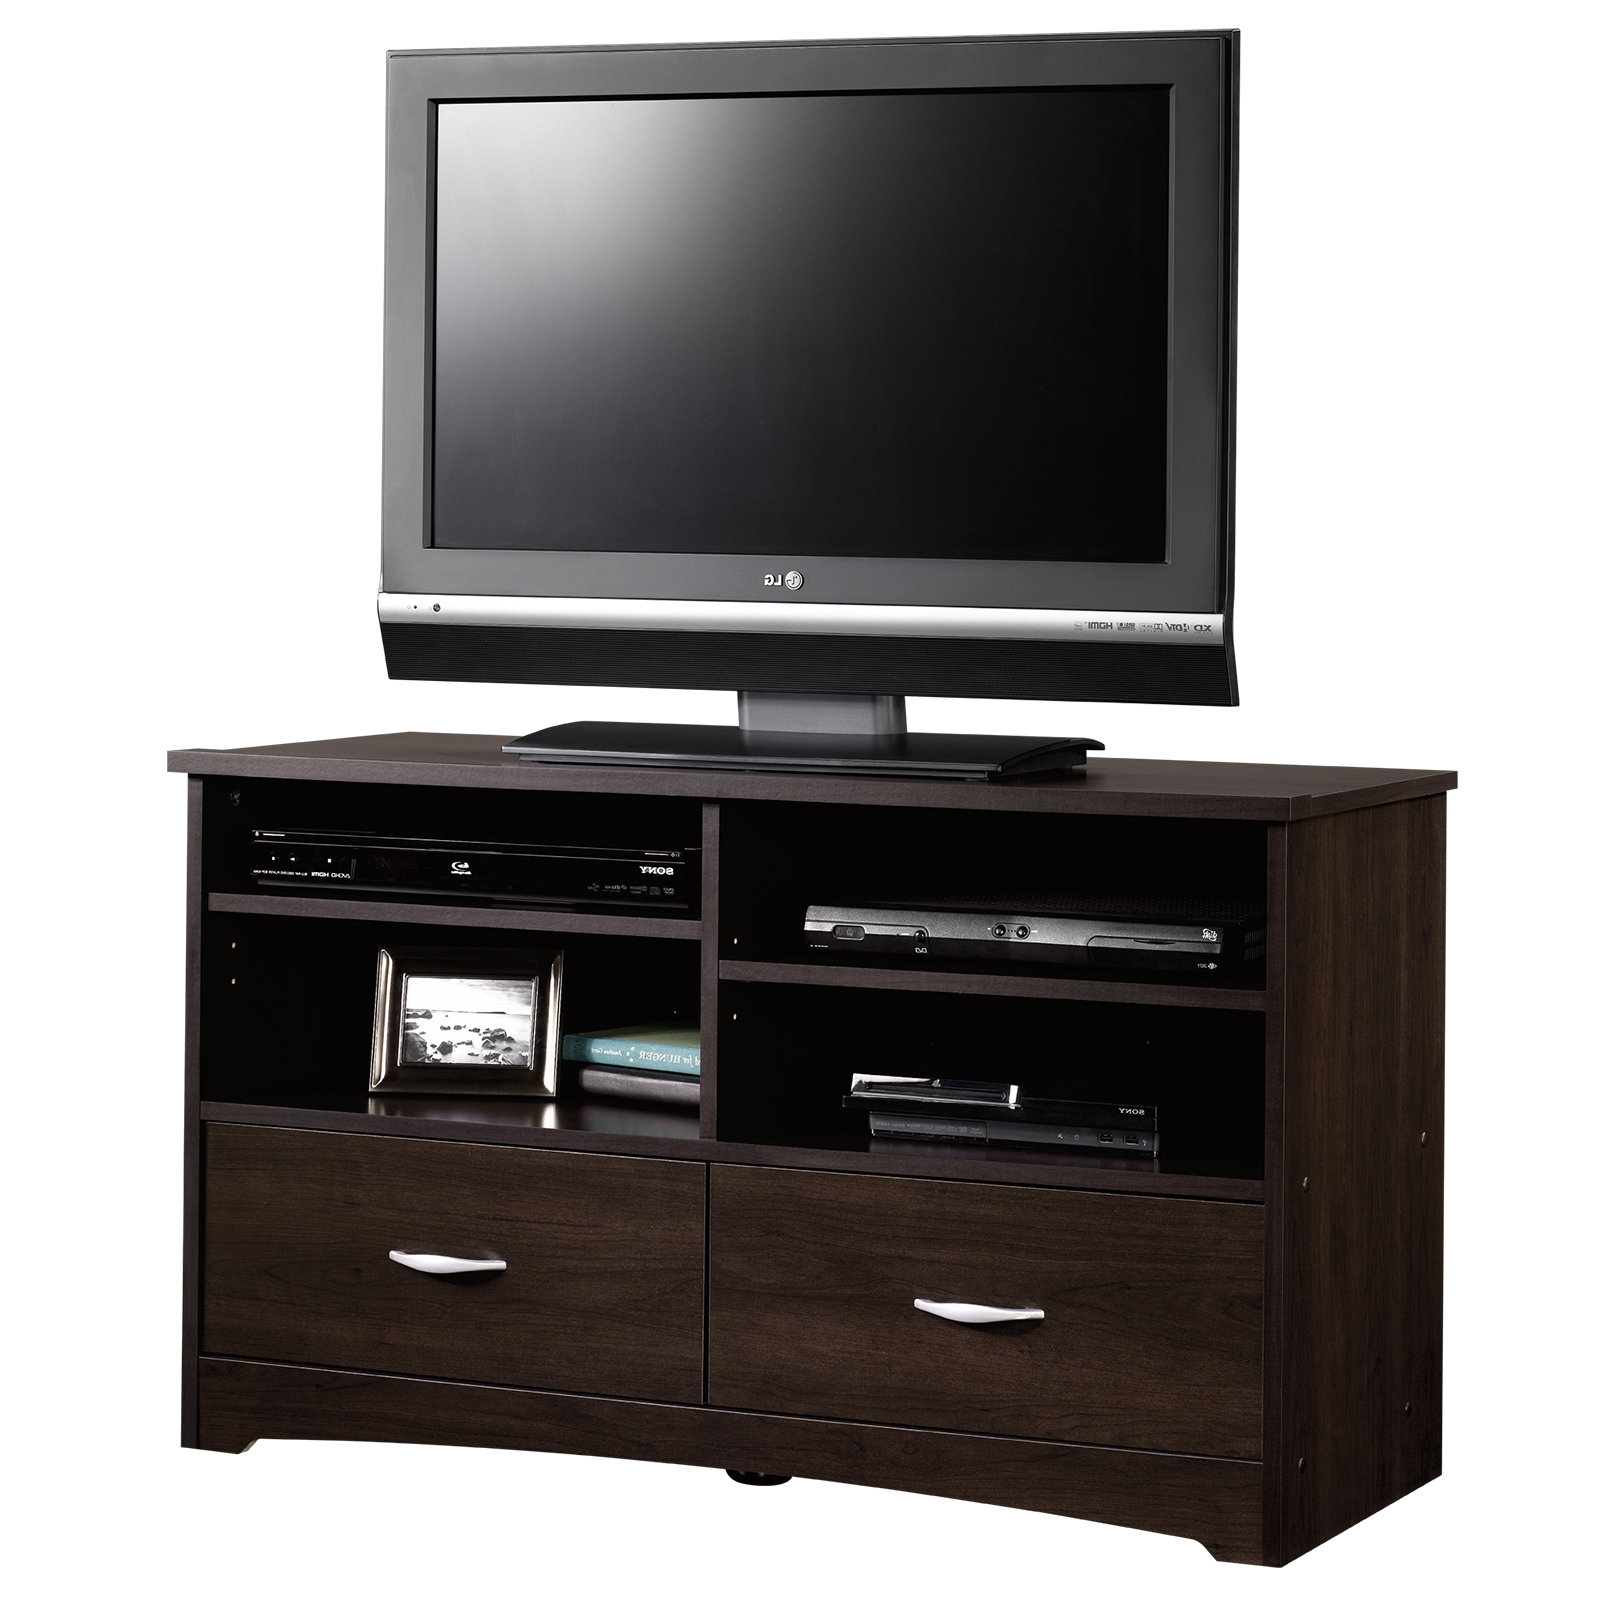 Beginnings | Tv Stand | 413045 | Sauder Intended For Tv Cabinets With Drawers (View 2 of 20)